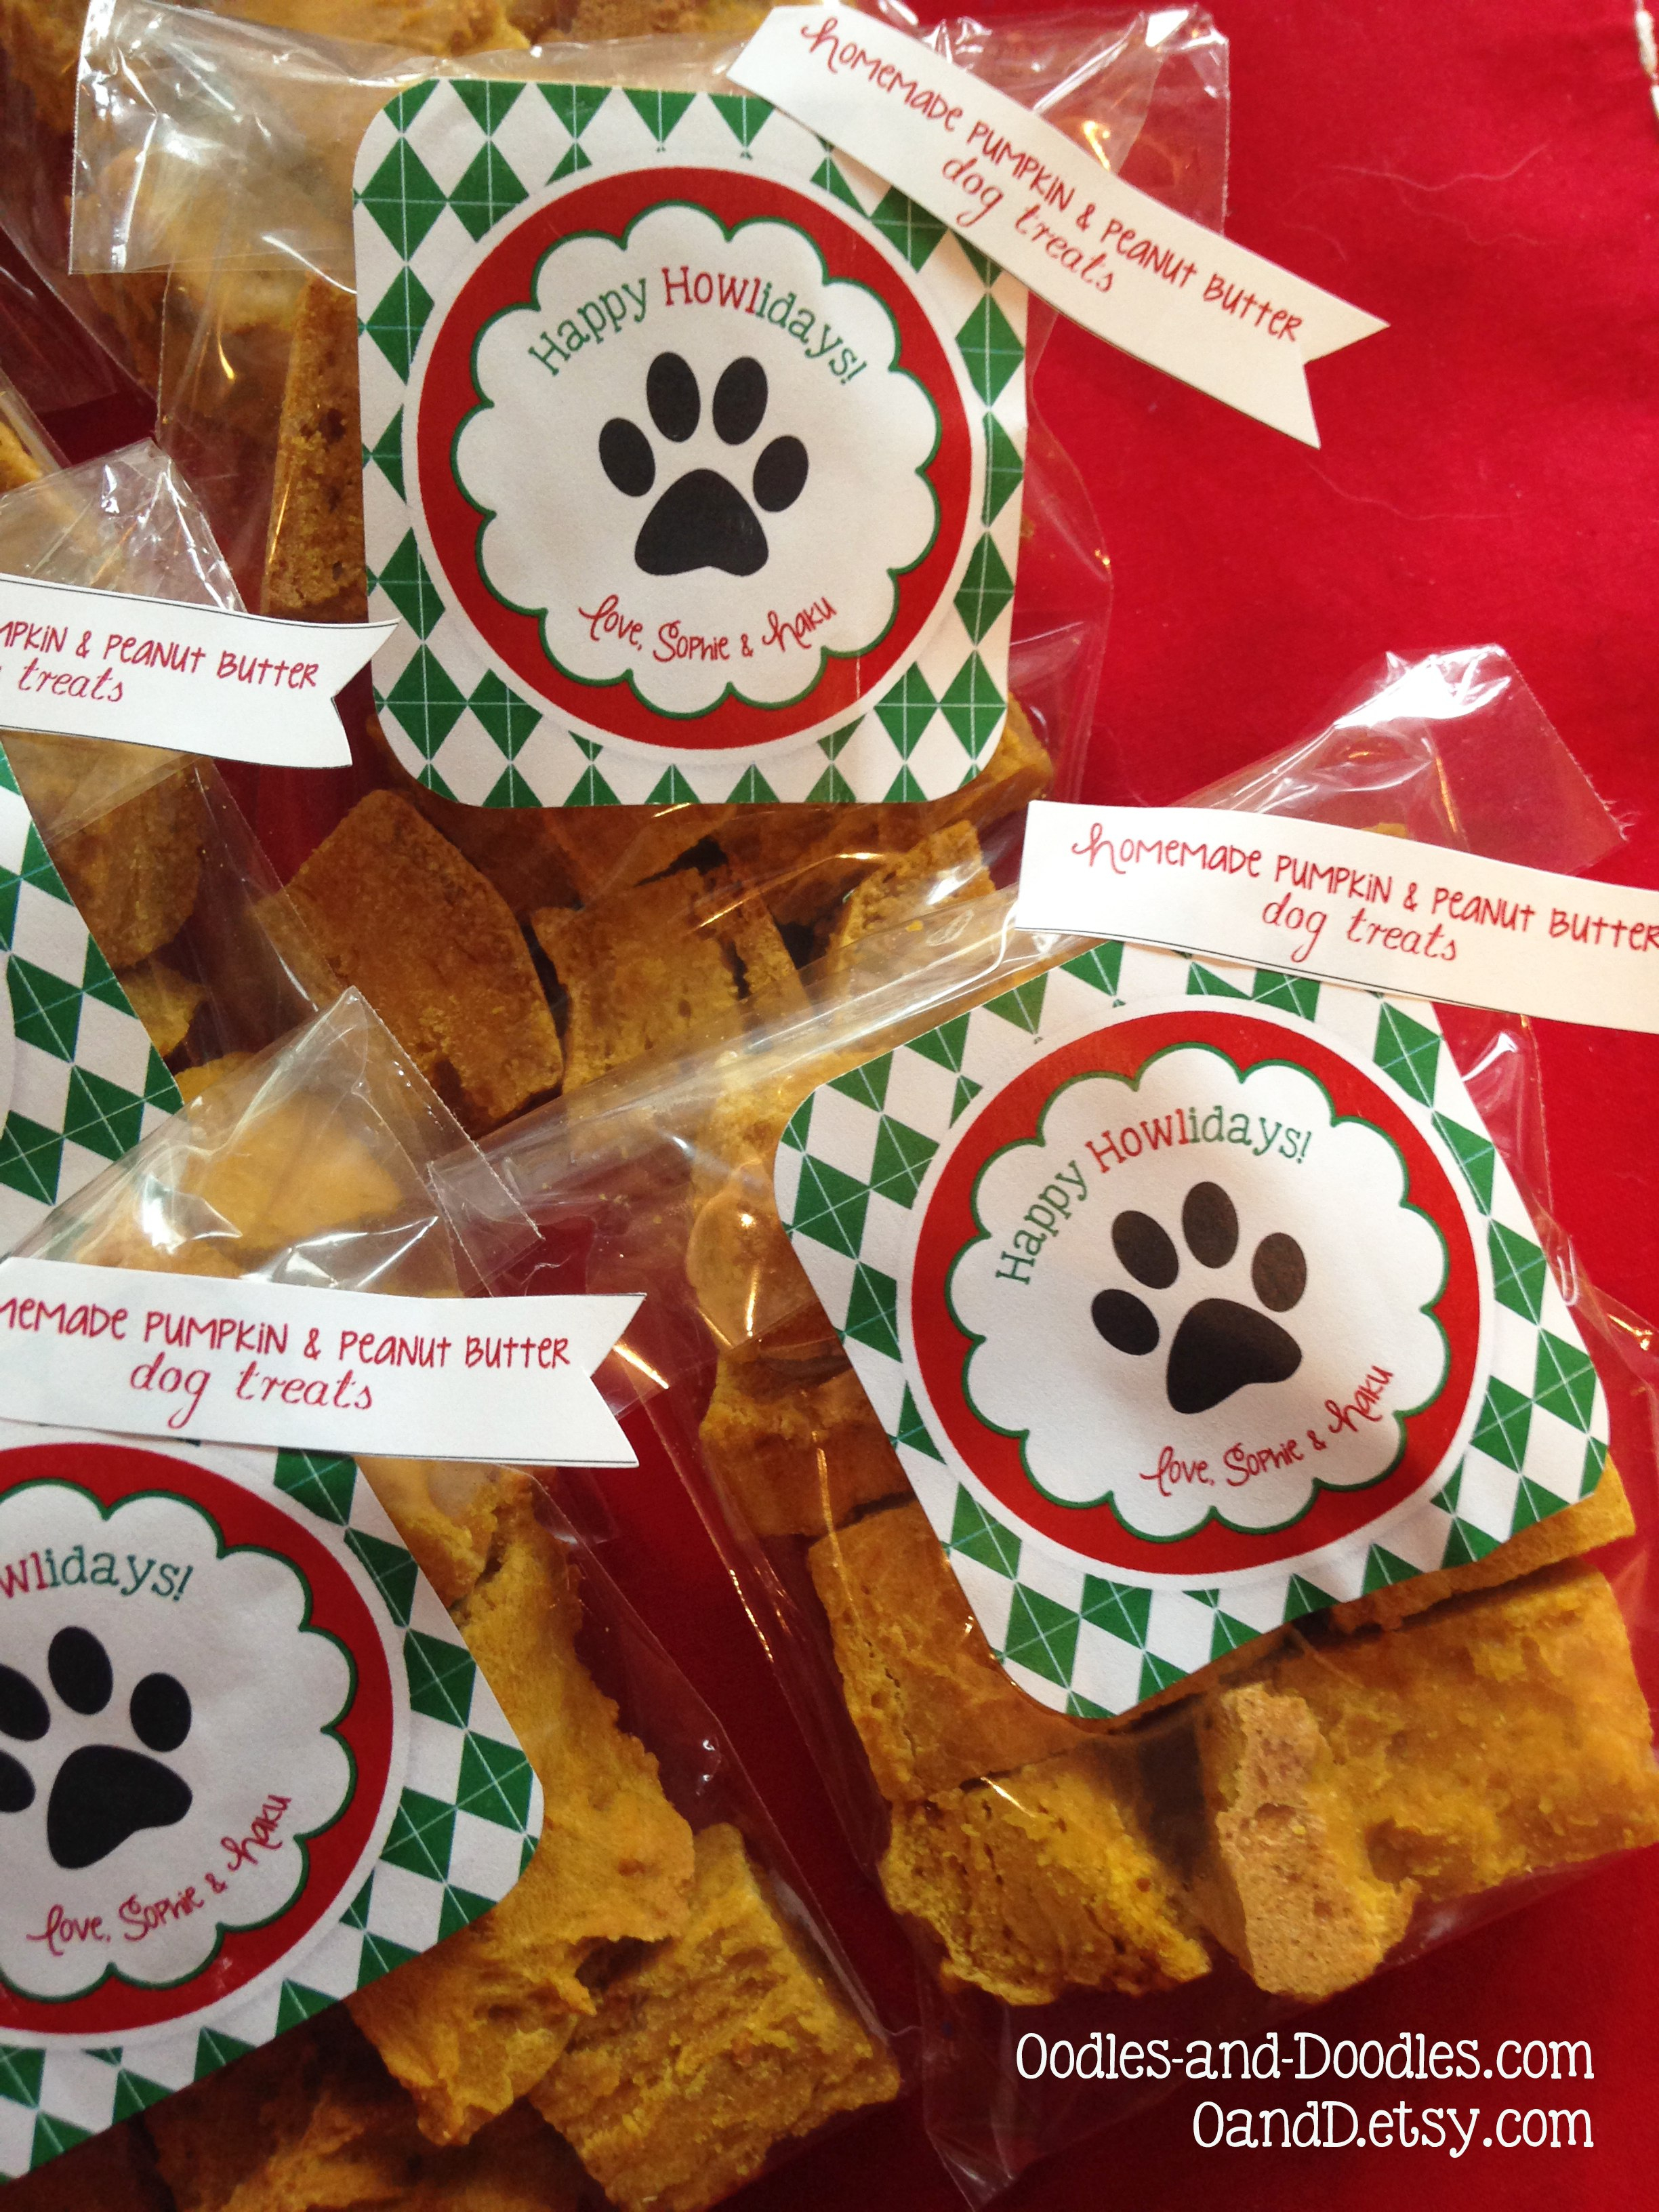 Free Printables  Oodles And Doodles Oandd Throughout Dog Treat Label Template